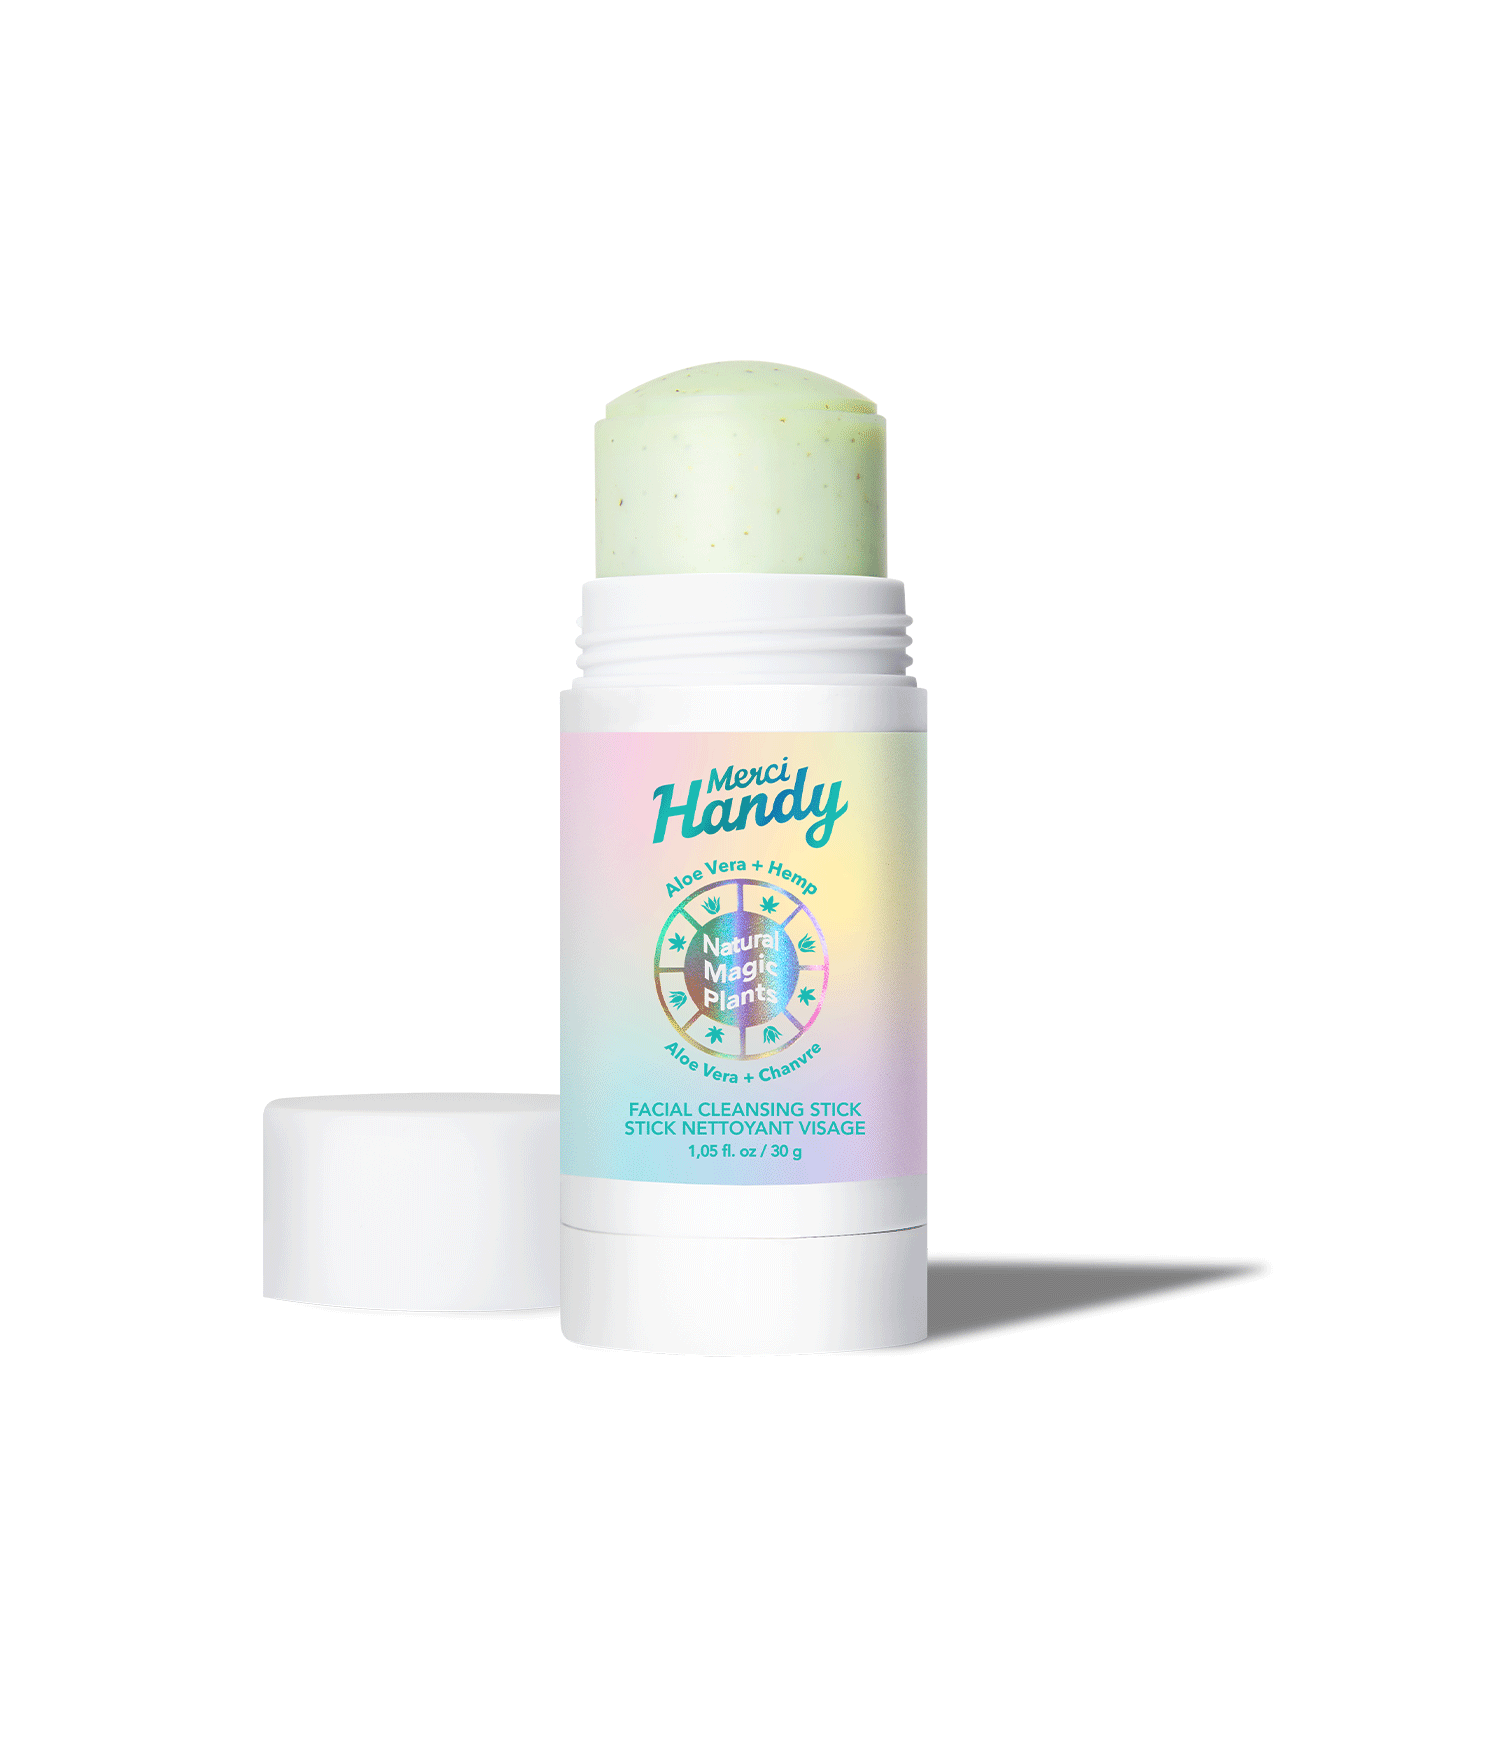 Facial Cleansing Stick